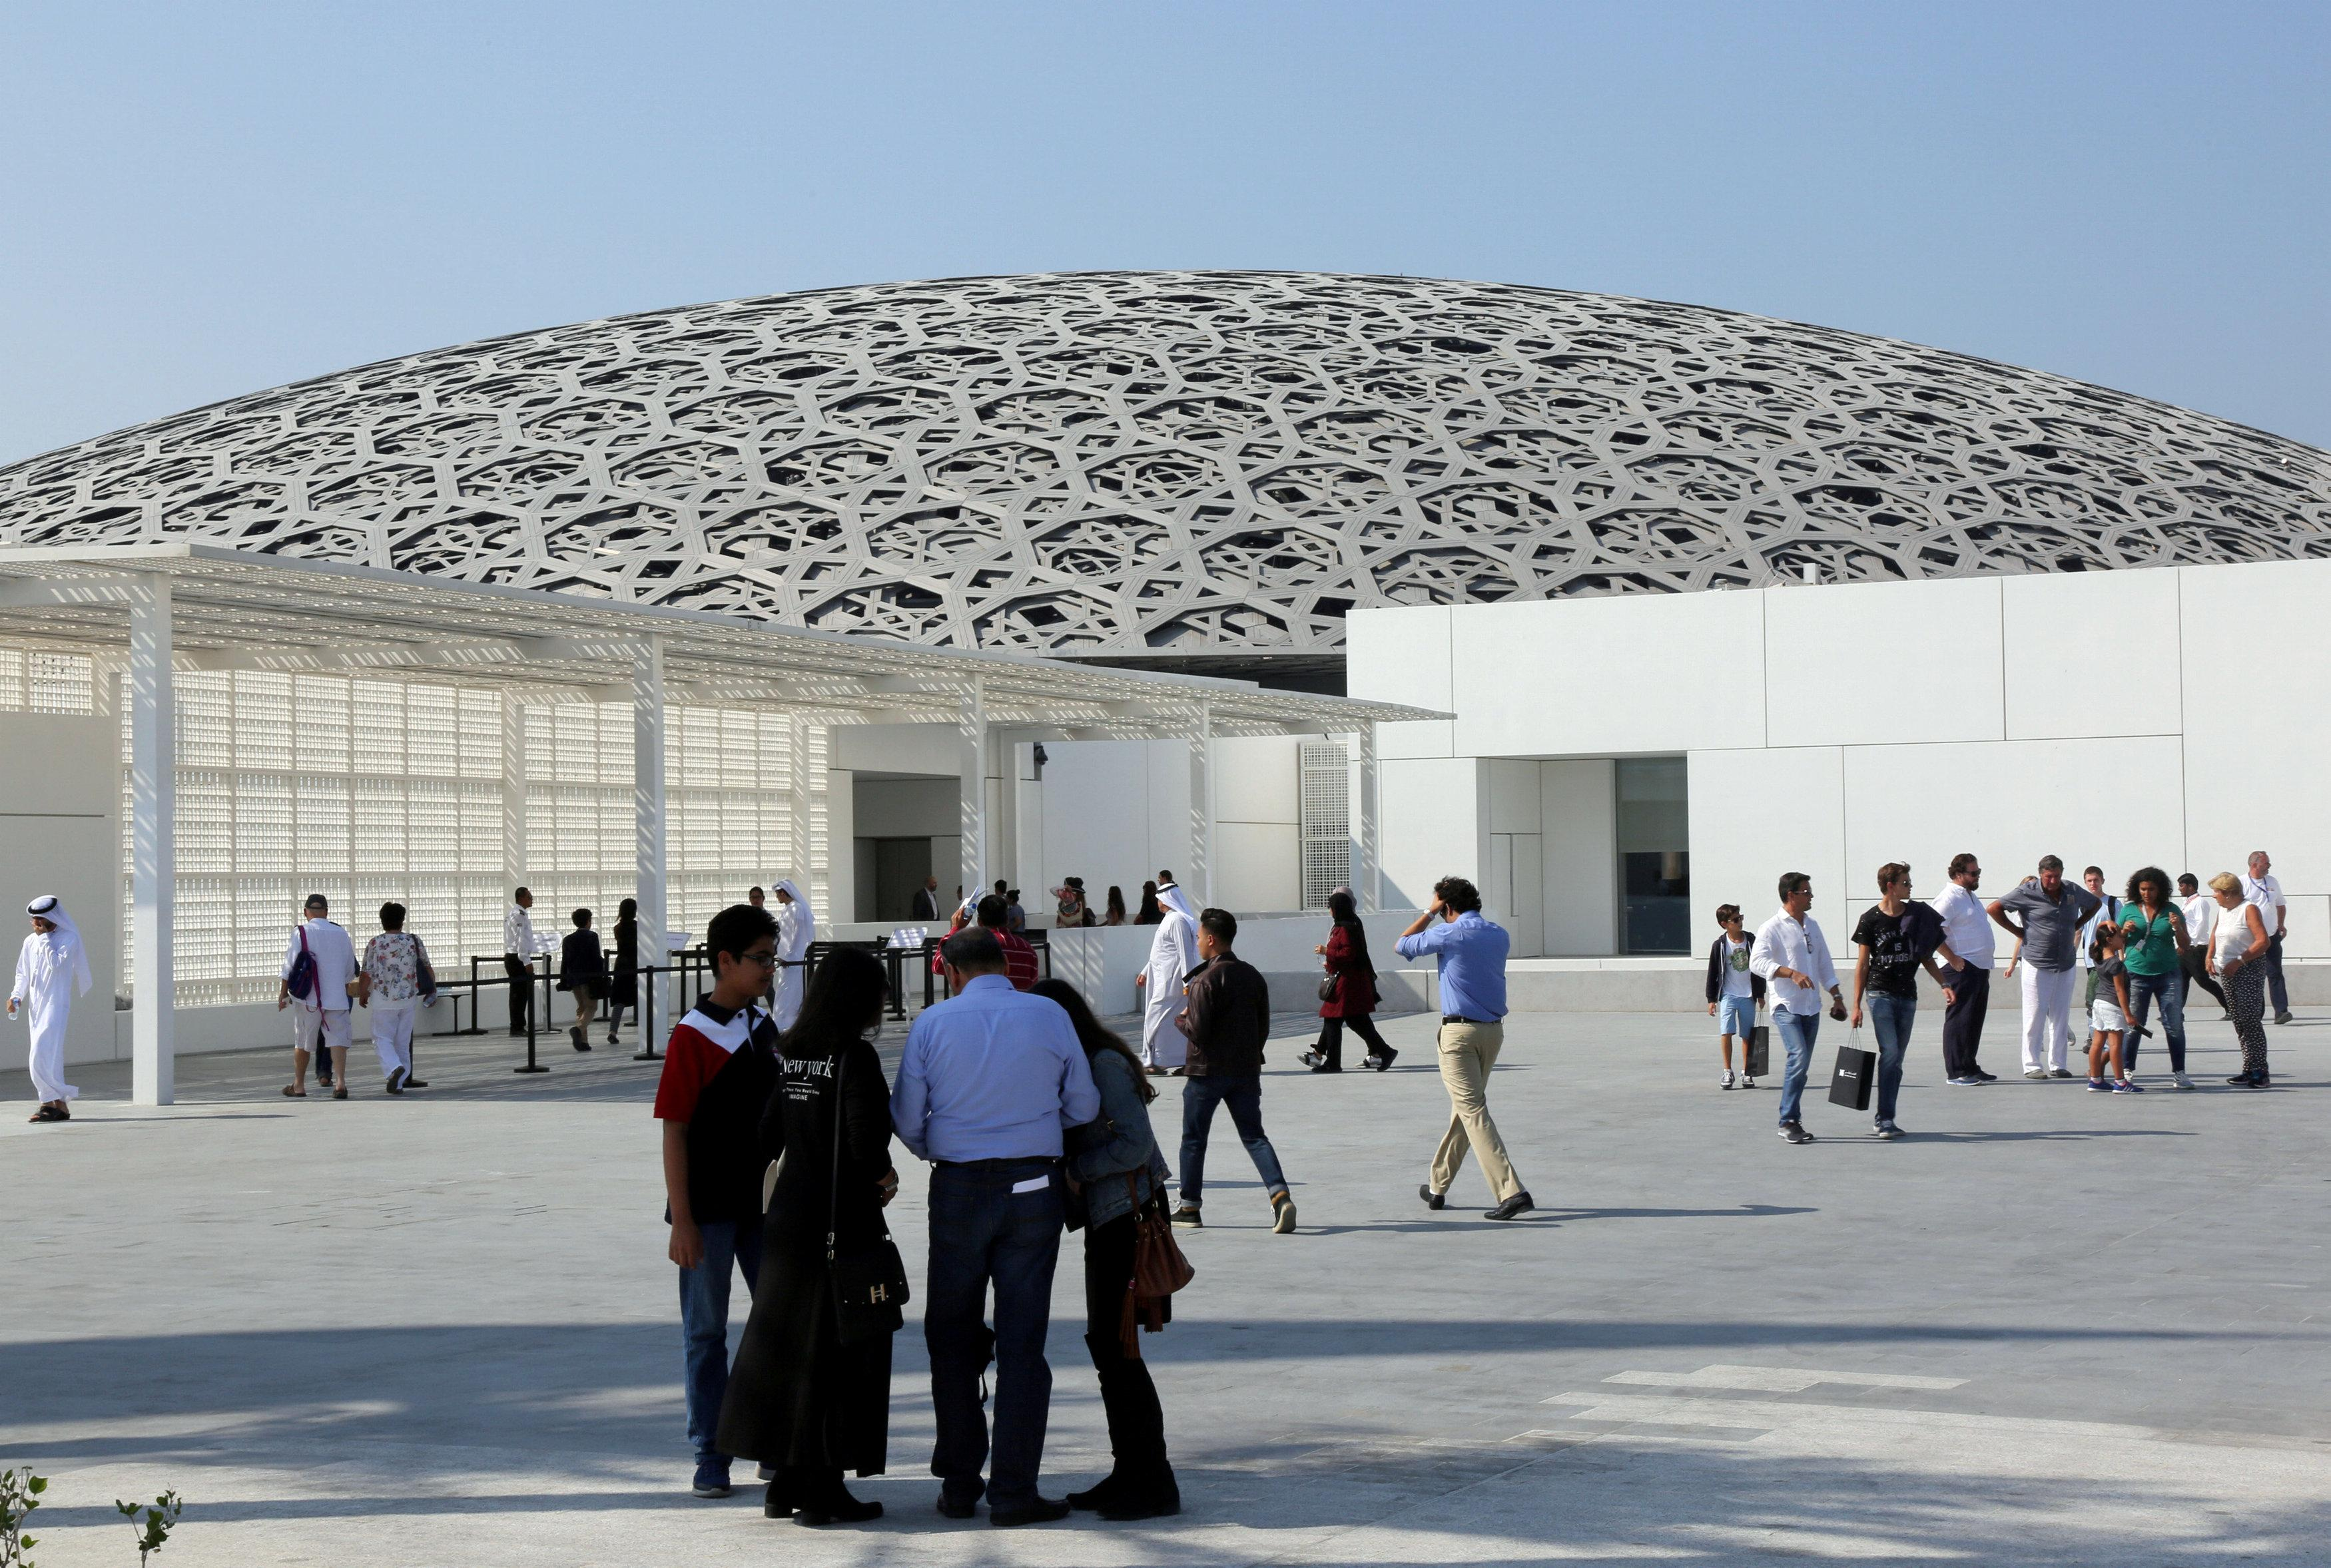 Visitors are seen at the Louvre Abu Dhabi after it was opened to public in Abu Dhabi, United Arab Emirates, November 11, 2017. Satish Kumar